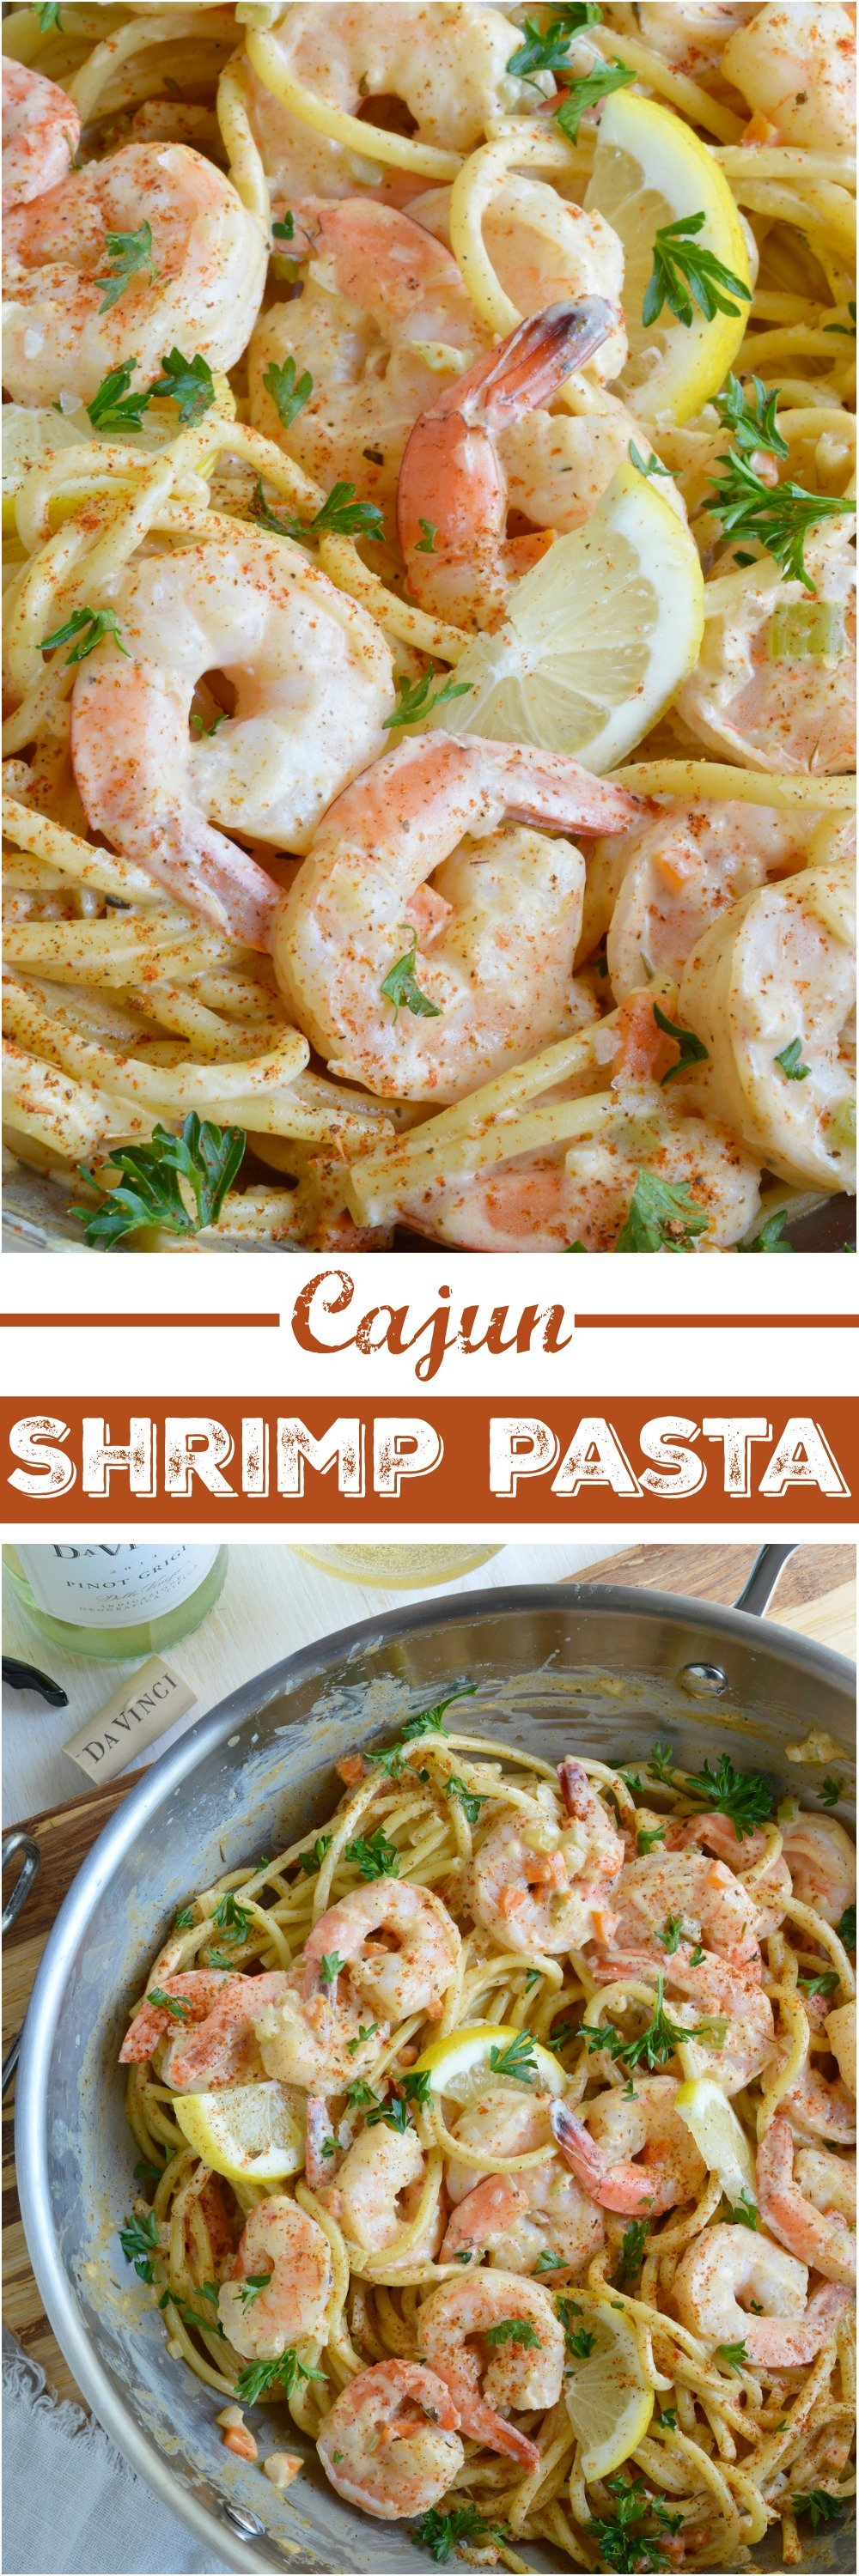 Cajun shrimp pasta wonkywonderful cajun shrimp pasta is a fancy yet simple dinner recipe shrimp and pasta slathered in forumfinder